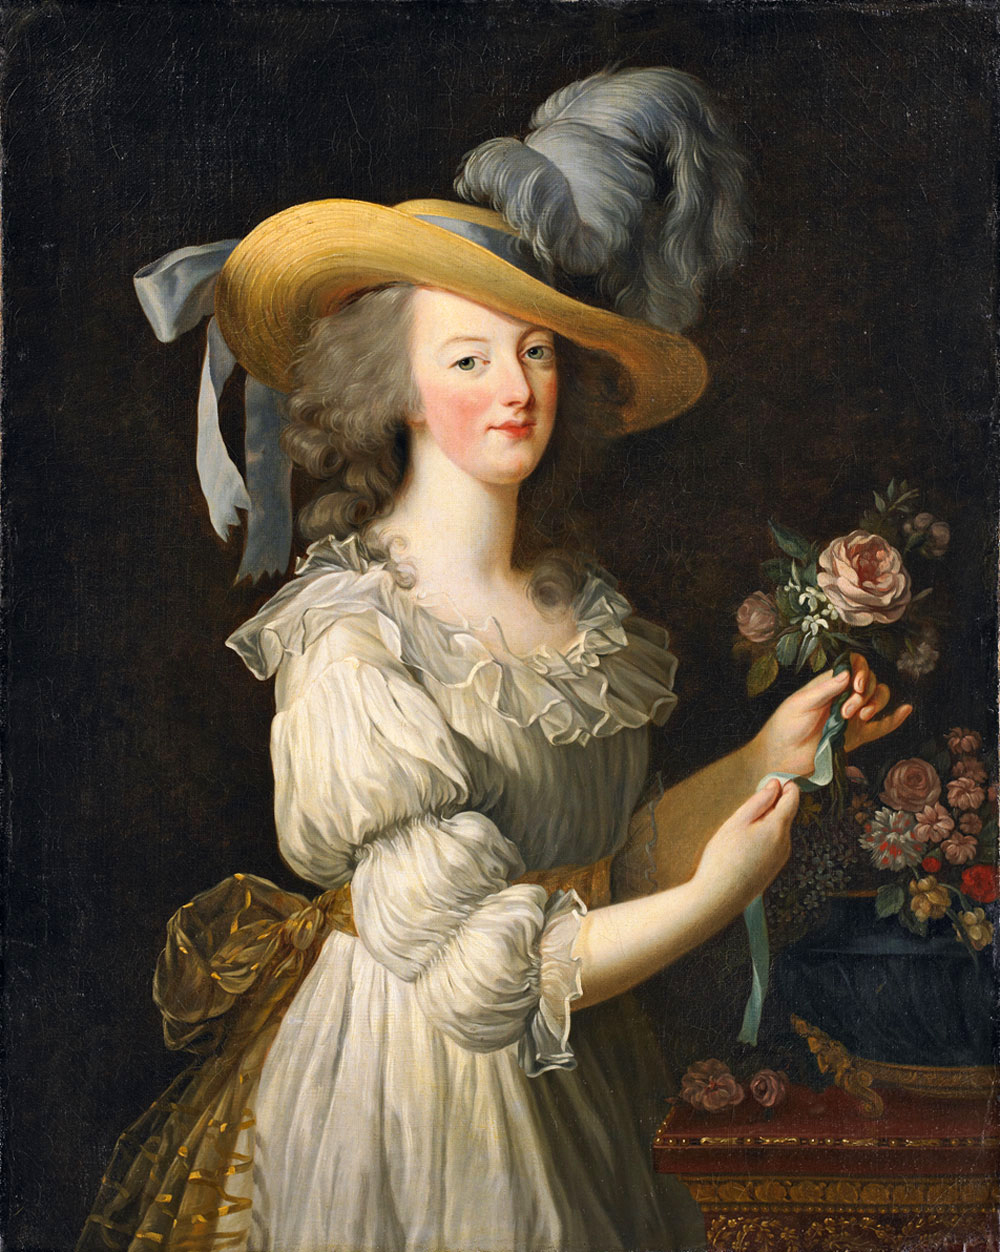 Elisabeth Vigée Lebrun, Marie Antoinette in a Muslin Dress, 1793, oil on canvas, Schloss Wolfsgarten